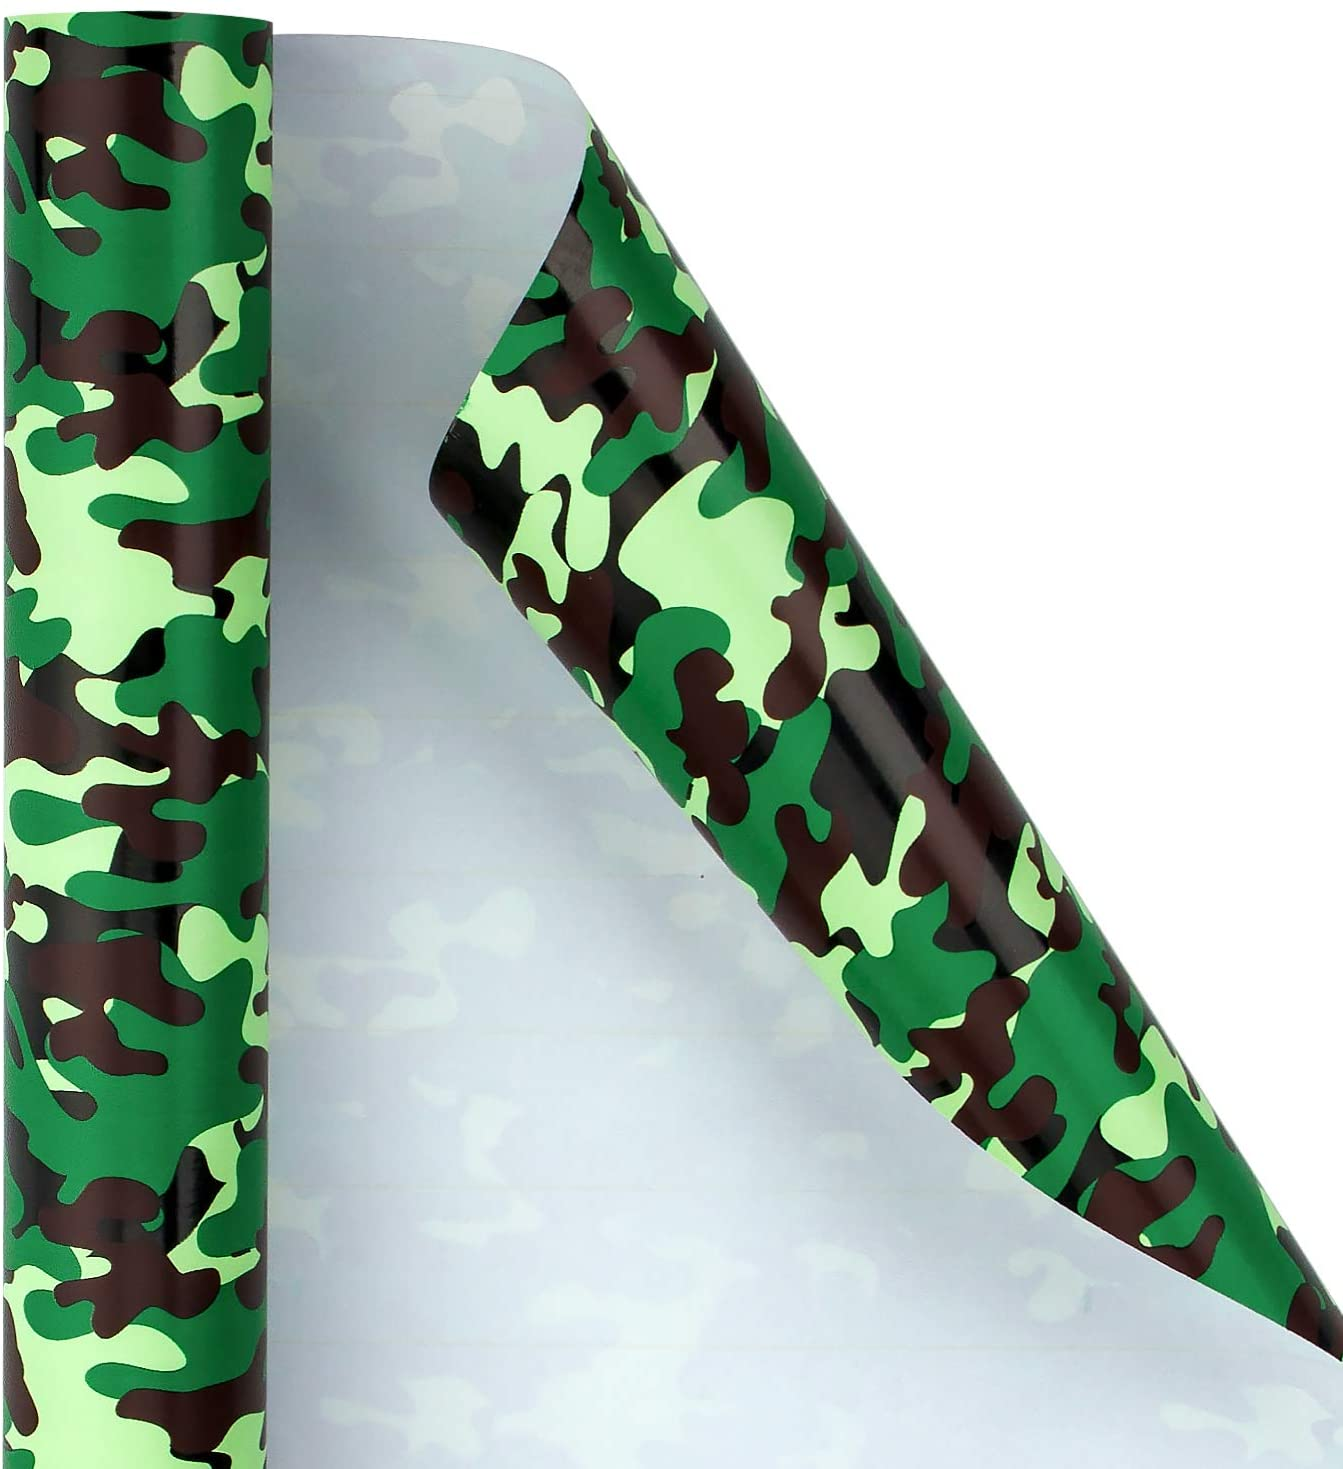 RUSPEPA Wrapping Paper Roll - Camouflage - Green Design Great for Wedding, Birthday, Baby Shower, Parties, Mother's Day, and Holiday - 30 inches x 32.8 feet Per Roll